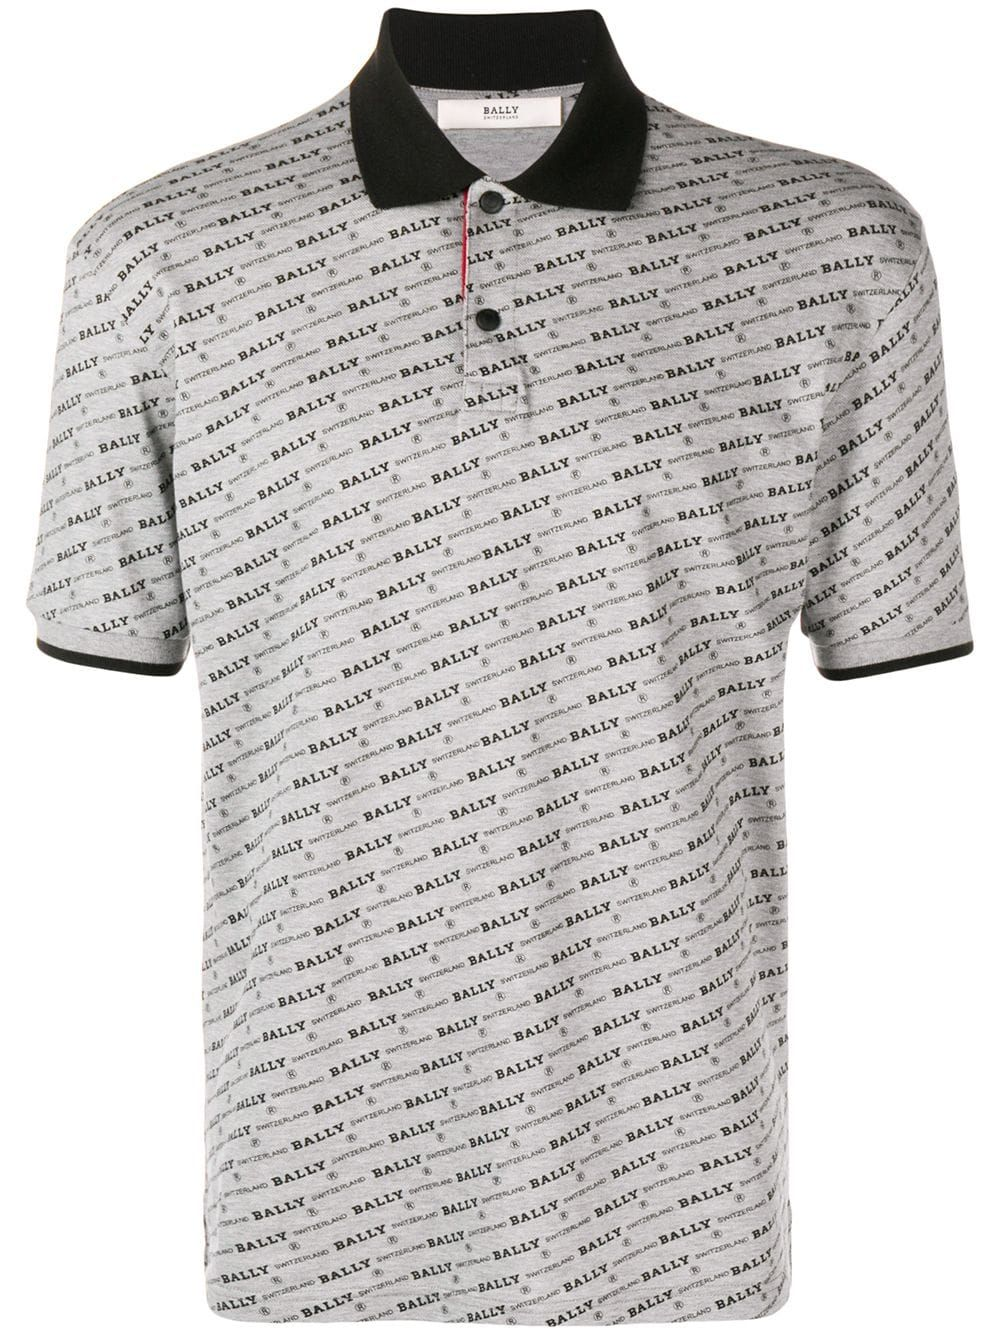 efc1f259f BALLY BALLY MONOGRAM POLO SHIRT - GREY. #bally #cloth | Bally in ...